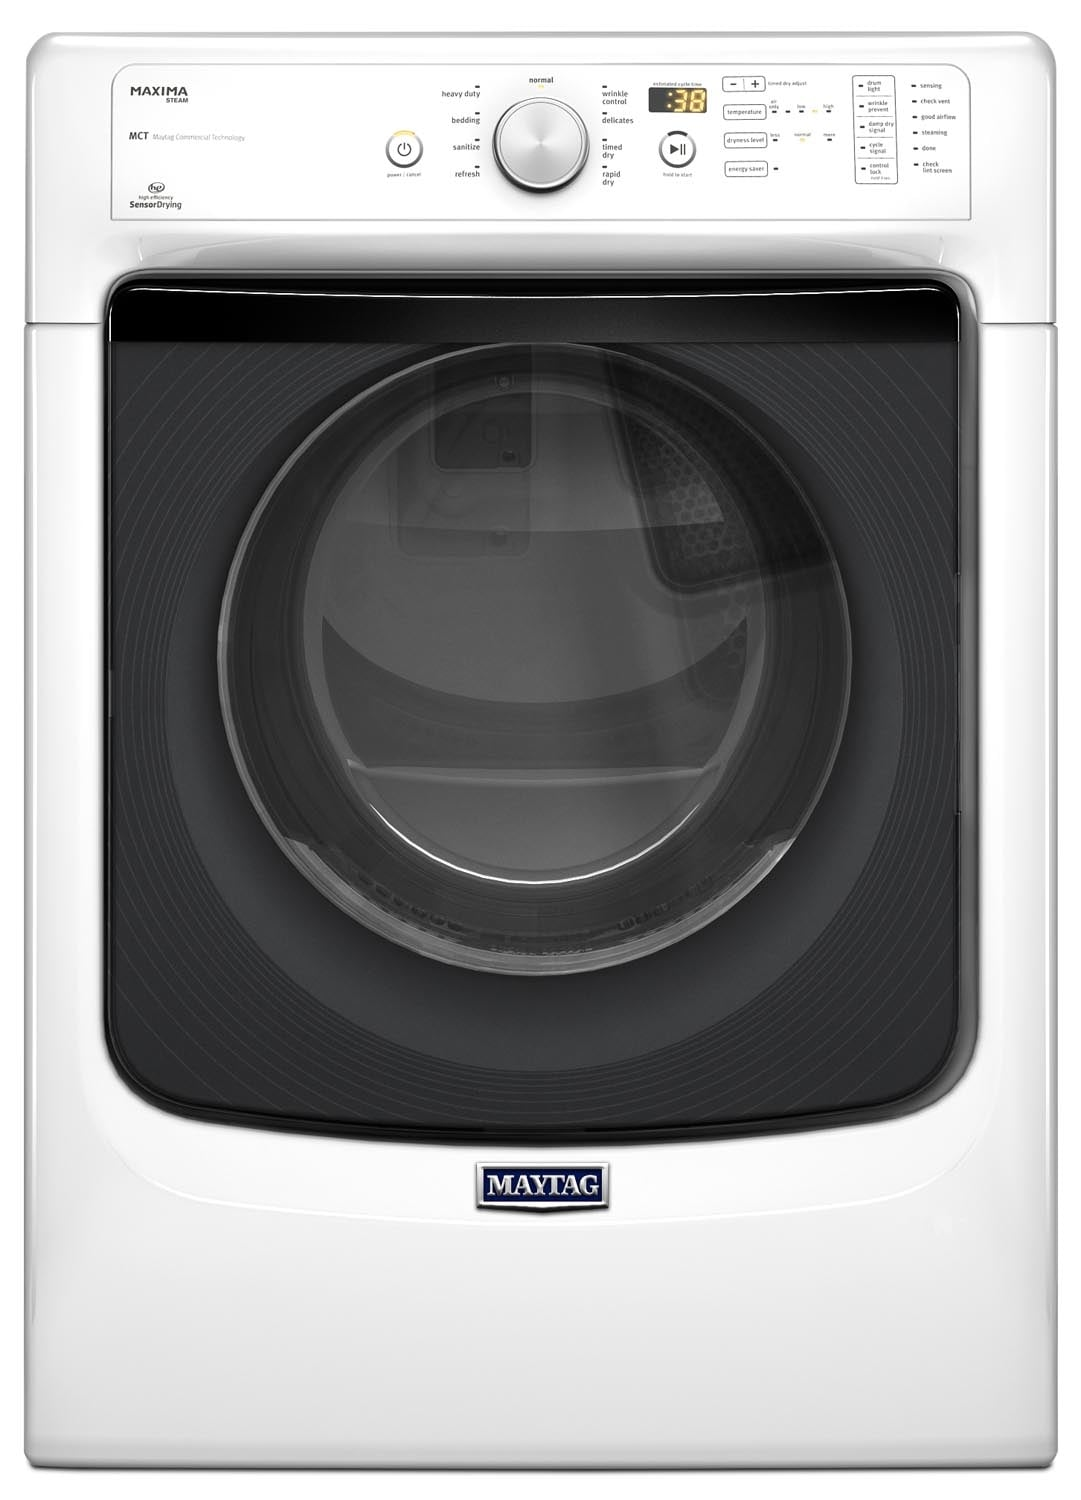 Washers and Dryers - Maytag Maxima® Dryer (7.3 Cu. Ft.) YMED5100DW